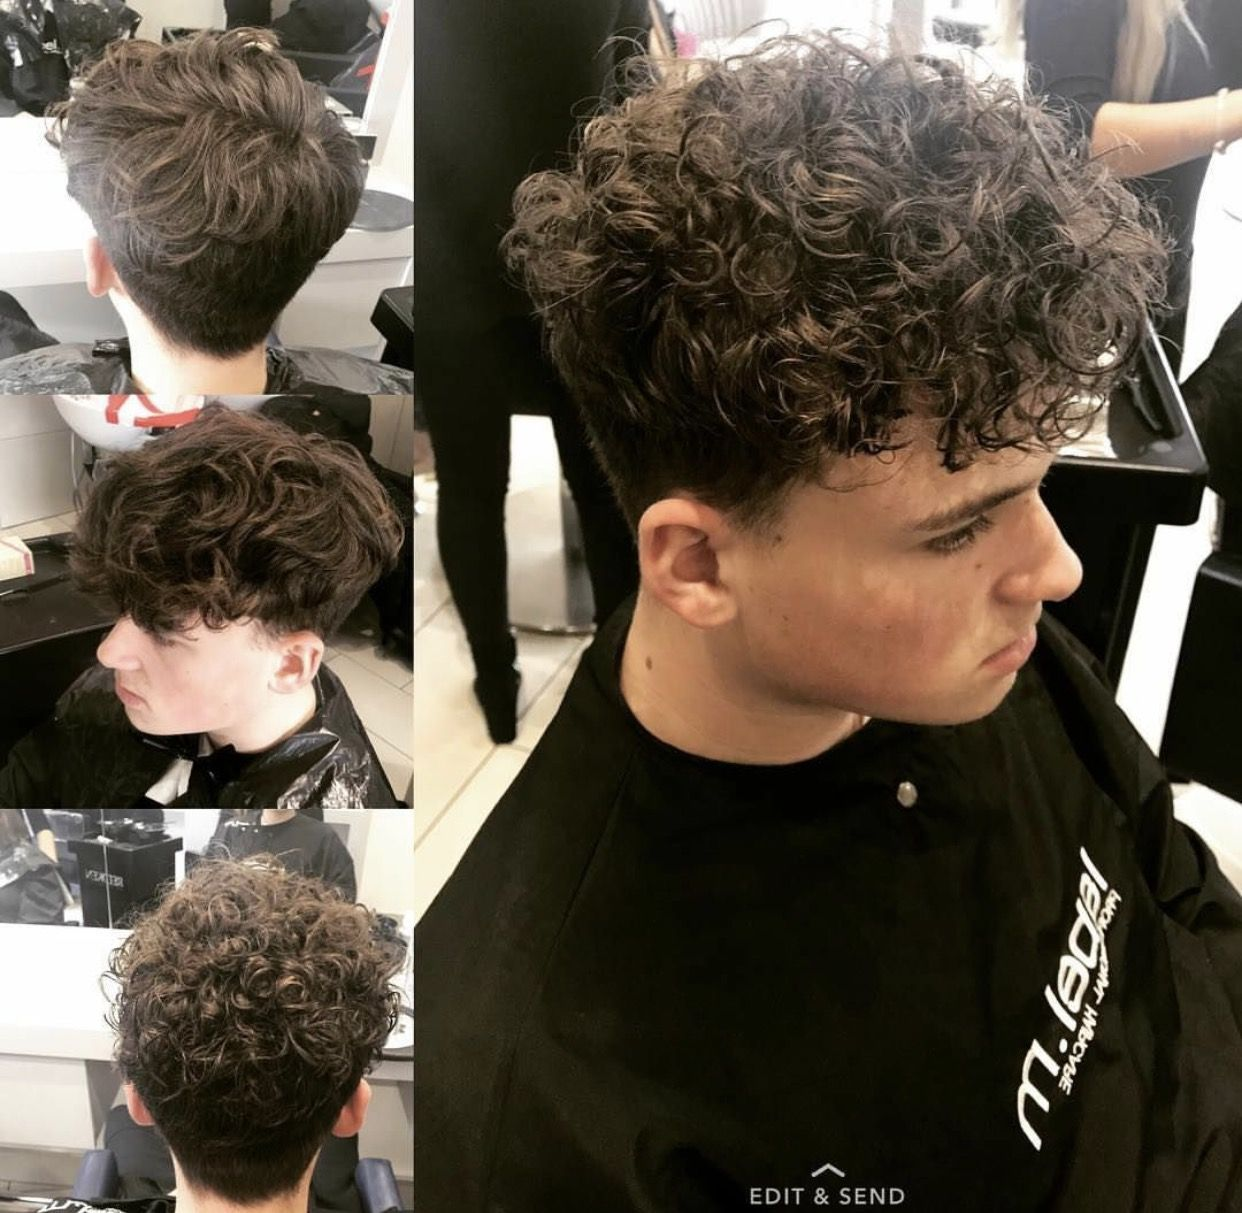 Male Perm Julian Meyer Male Perm Male Perm Sure The Bushy Perms Of The 80s Might Be Out Of Vogu In 2020 Permed Hairstyles Perm Hair Men Curly Hair Men